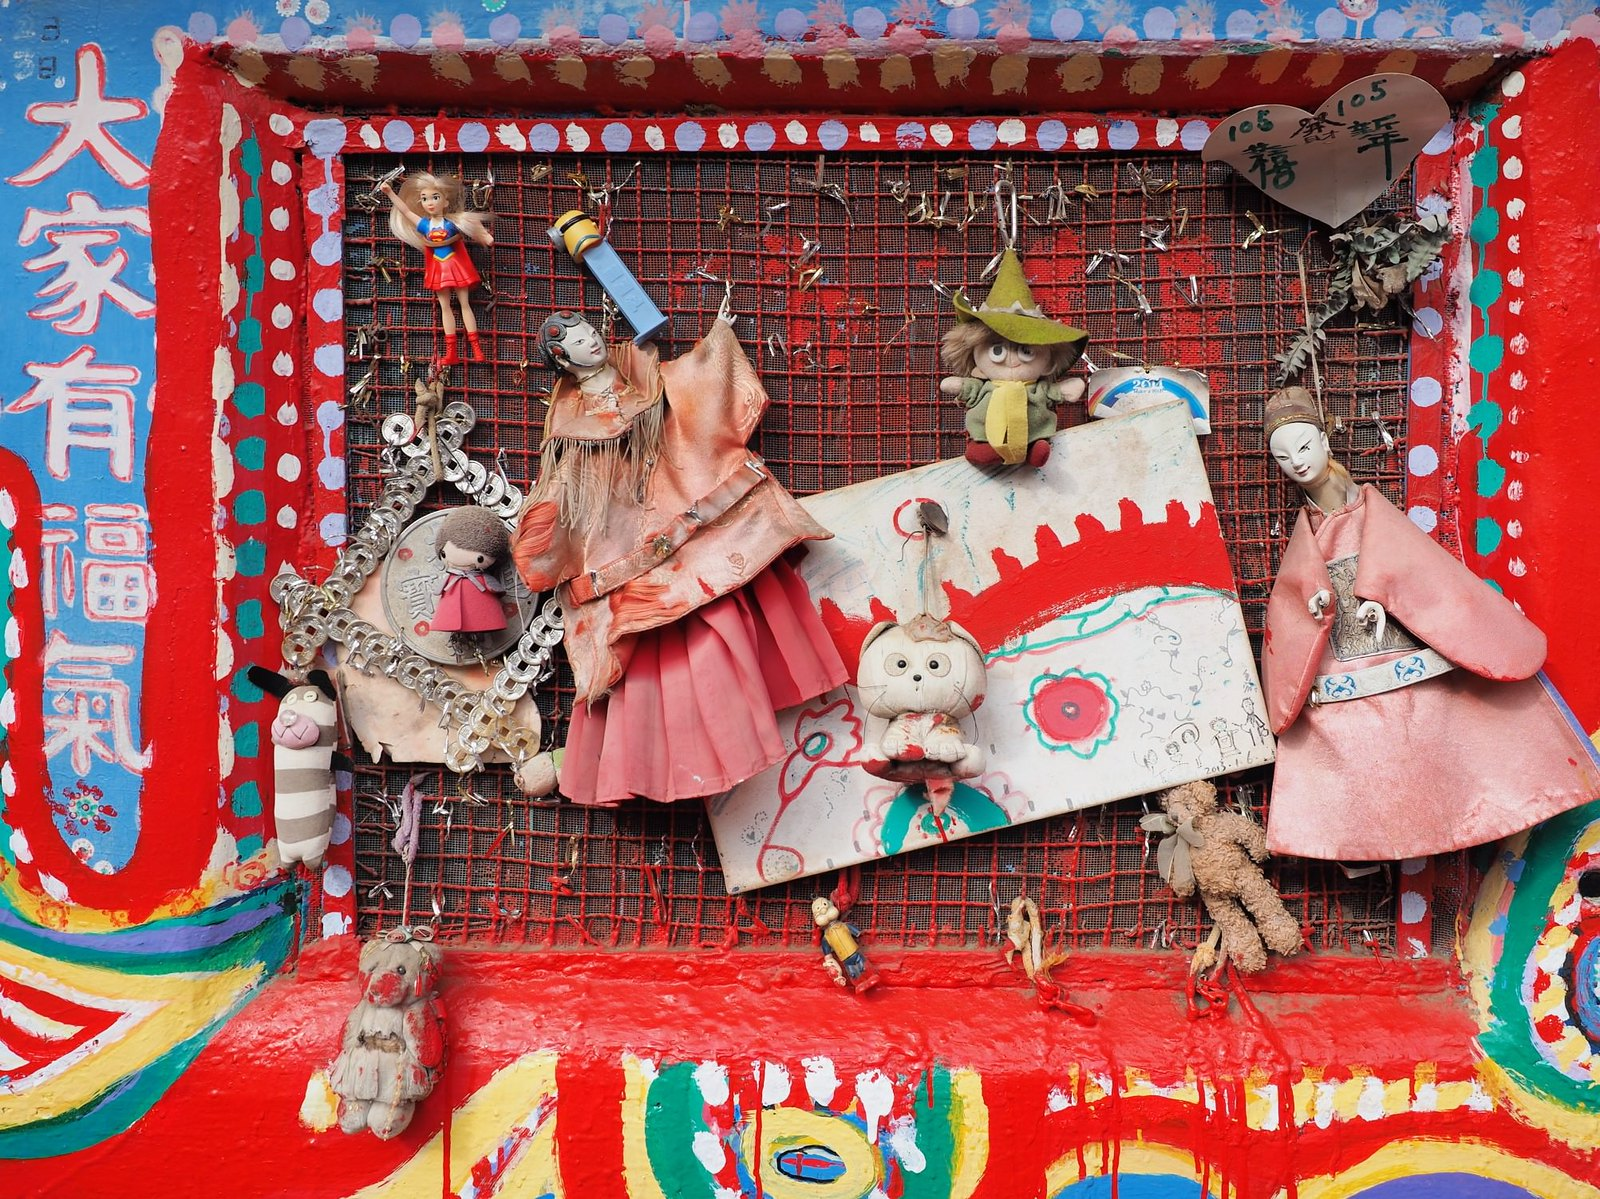 Small dolls at the Rainbow Village (彩虹眷村)